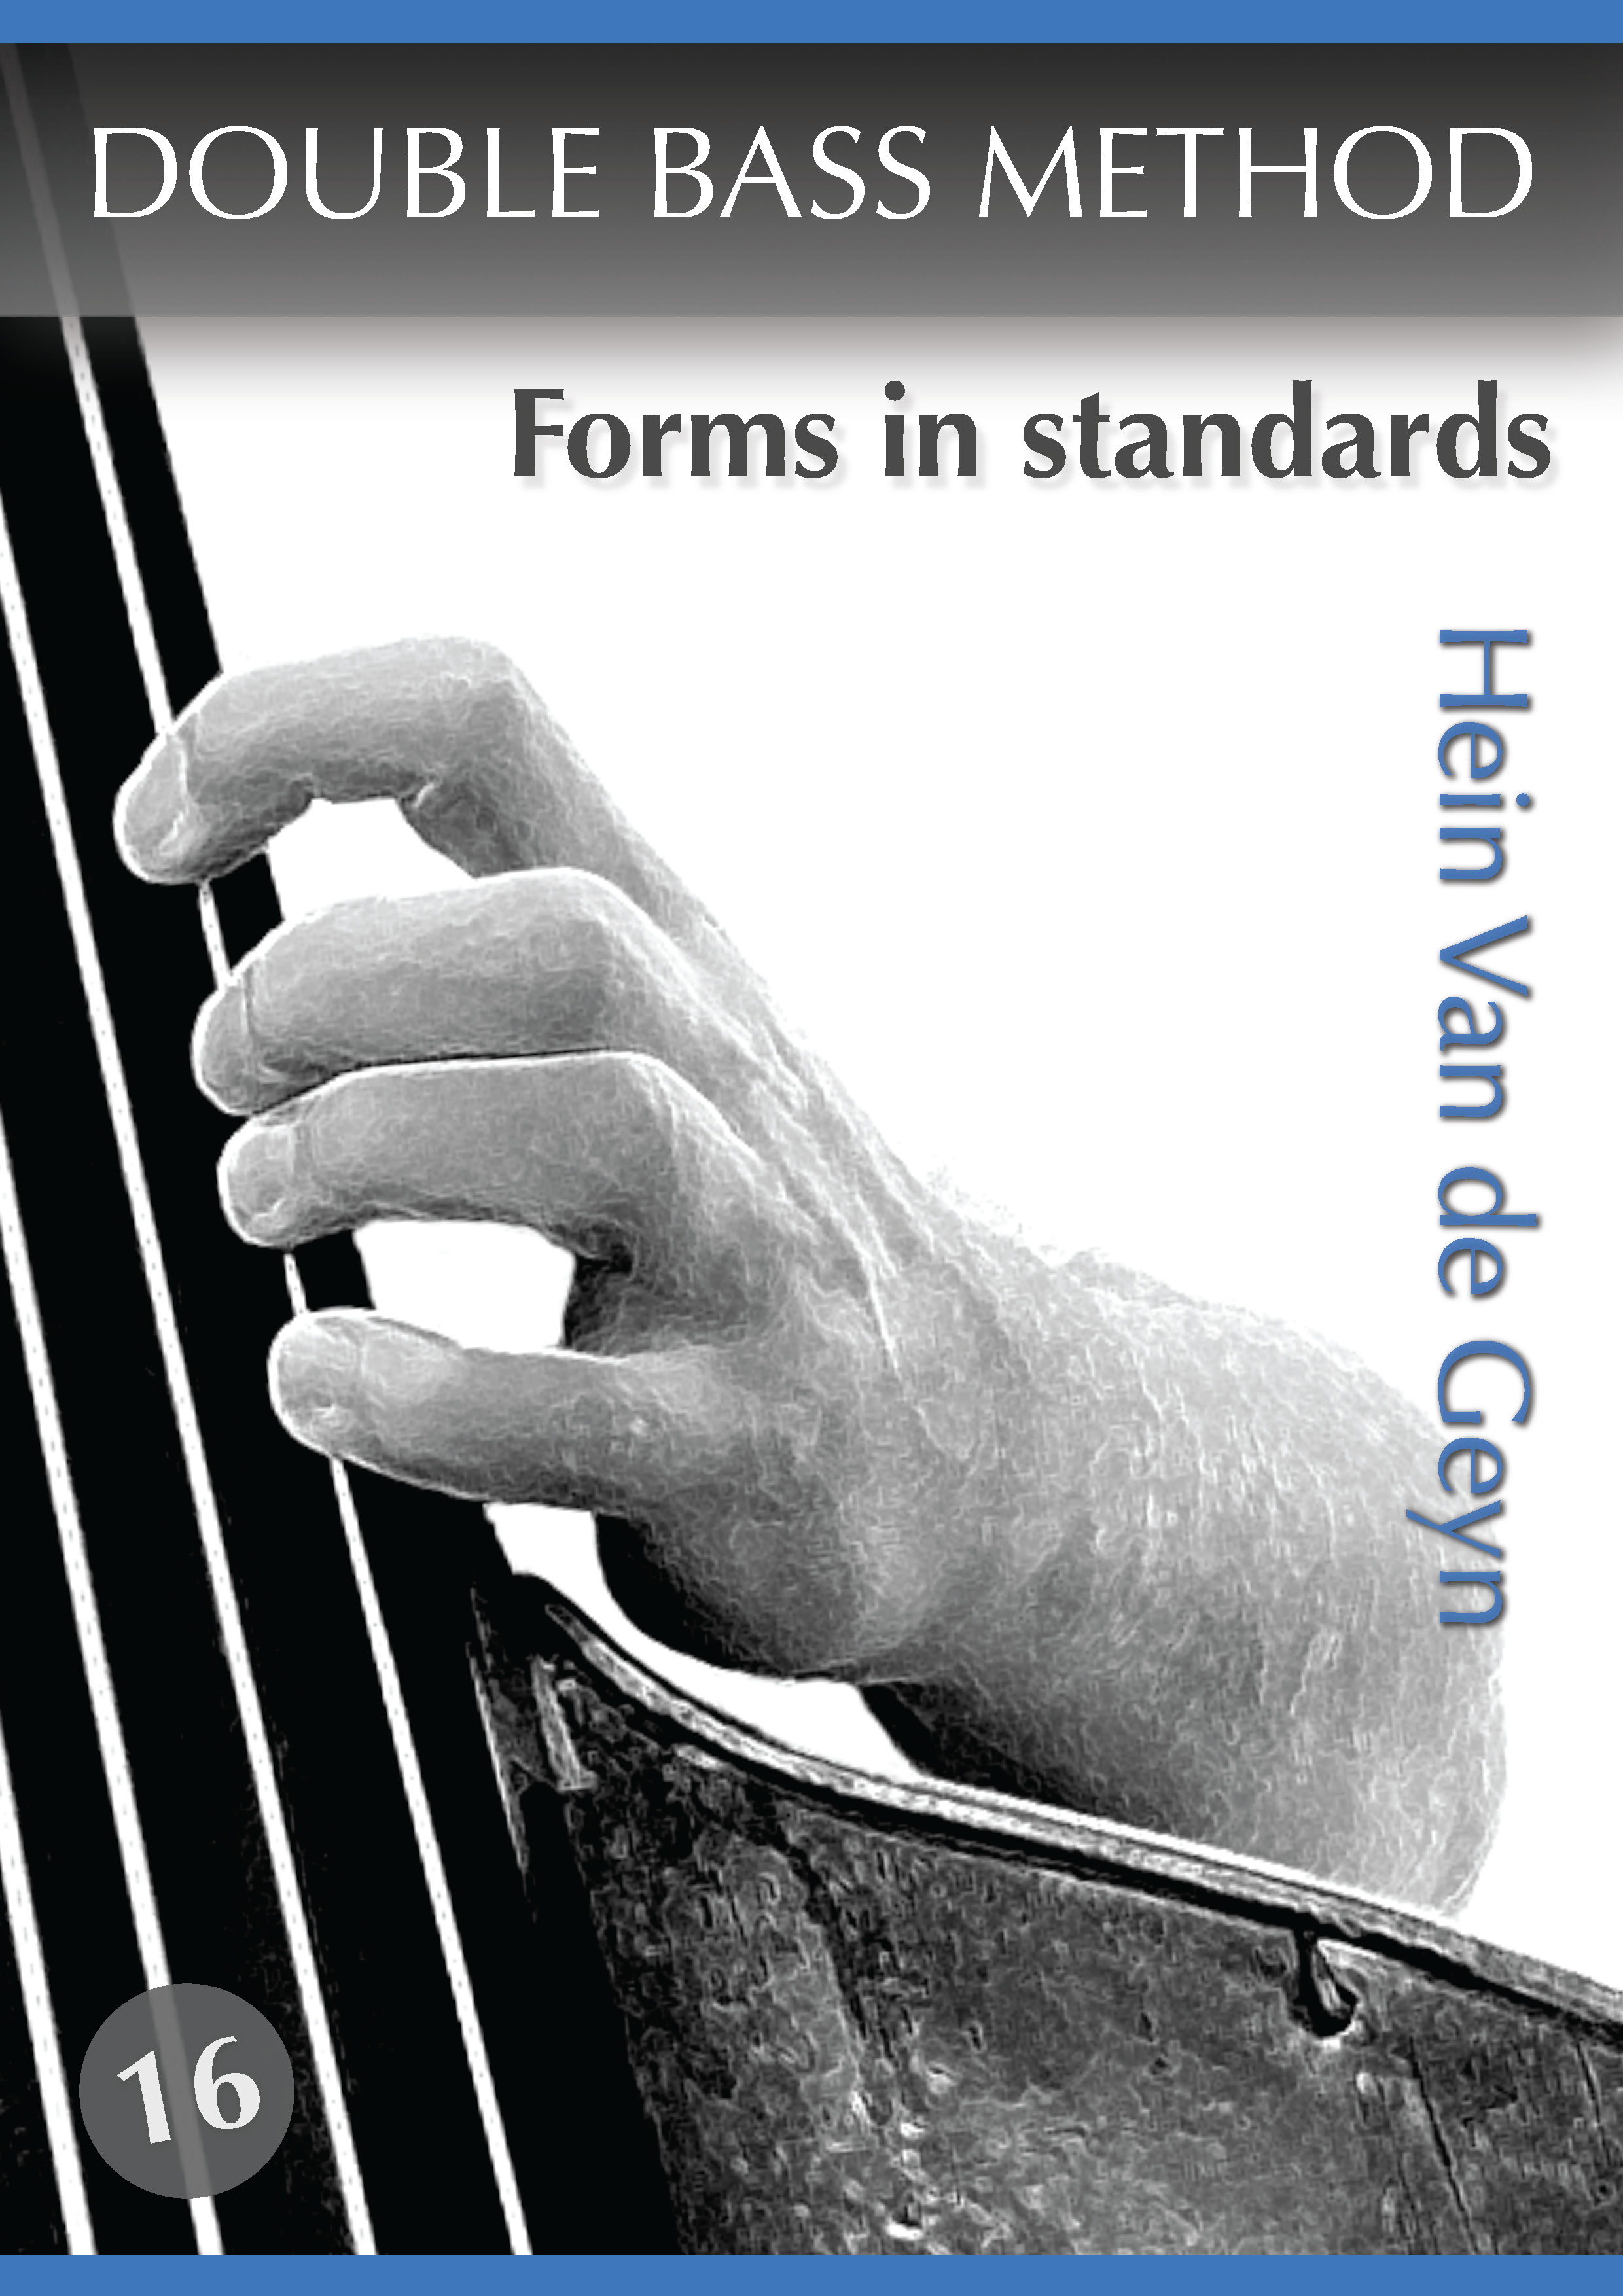 Forms in standards - Hein Van de Geyn - Double Bass Method